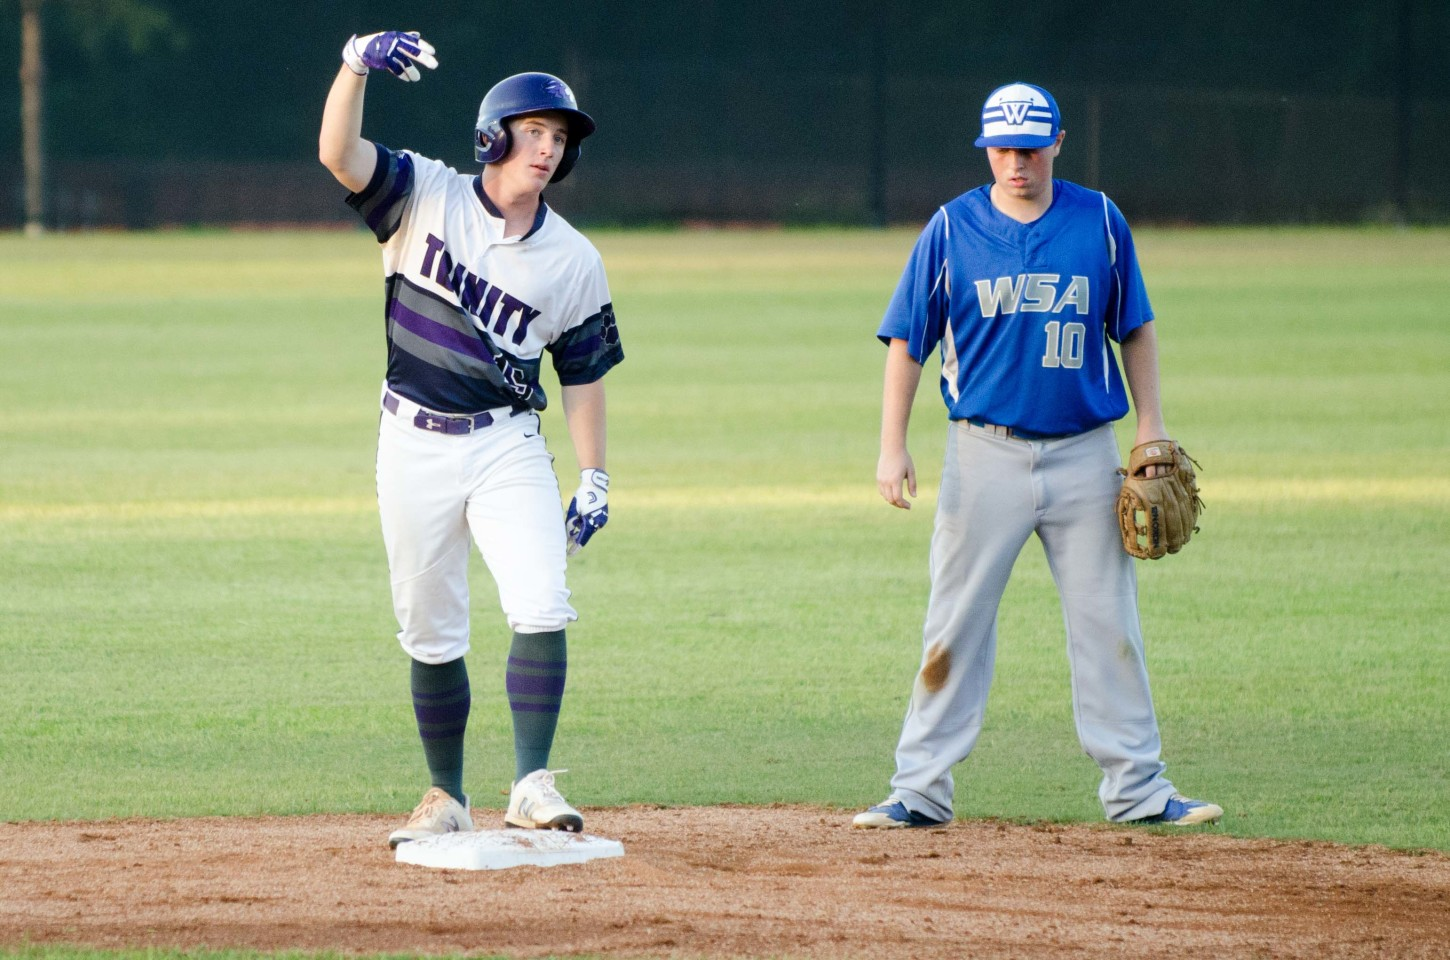 Cal Smith hit two of Trinity's six home runs in a first-round DH sweep last week.